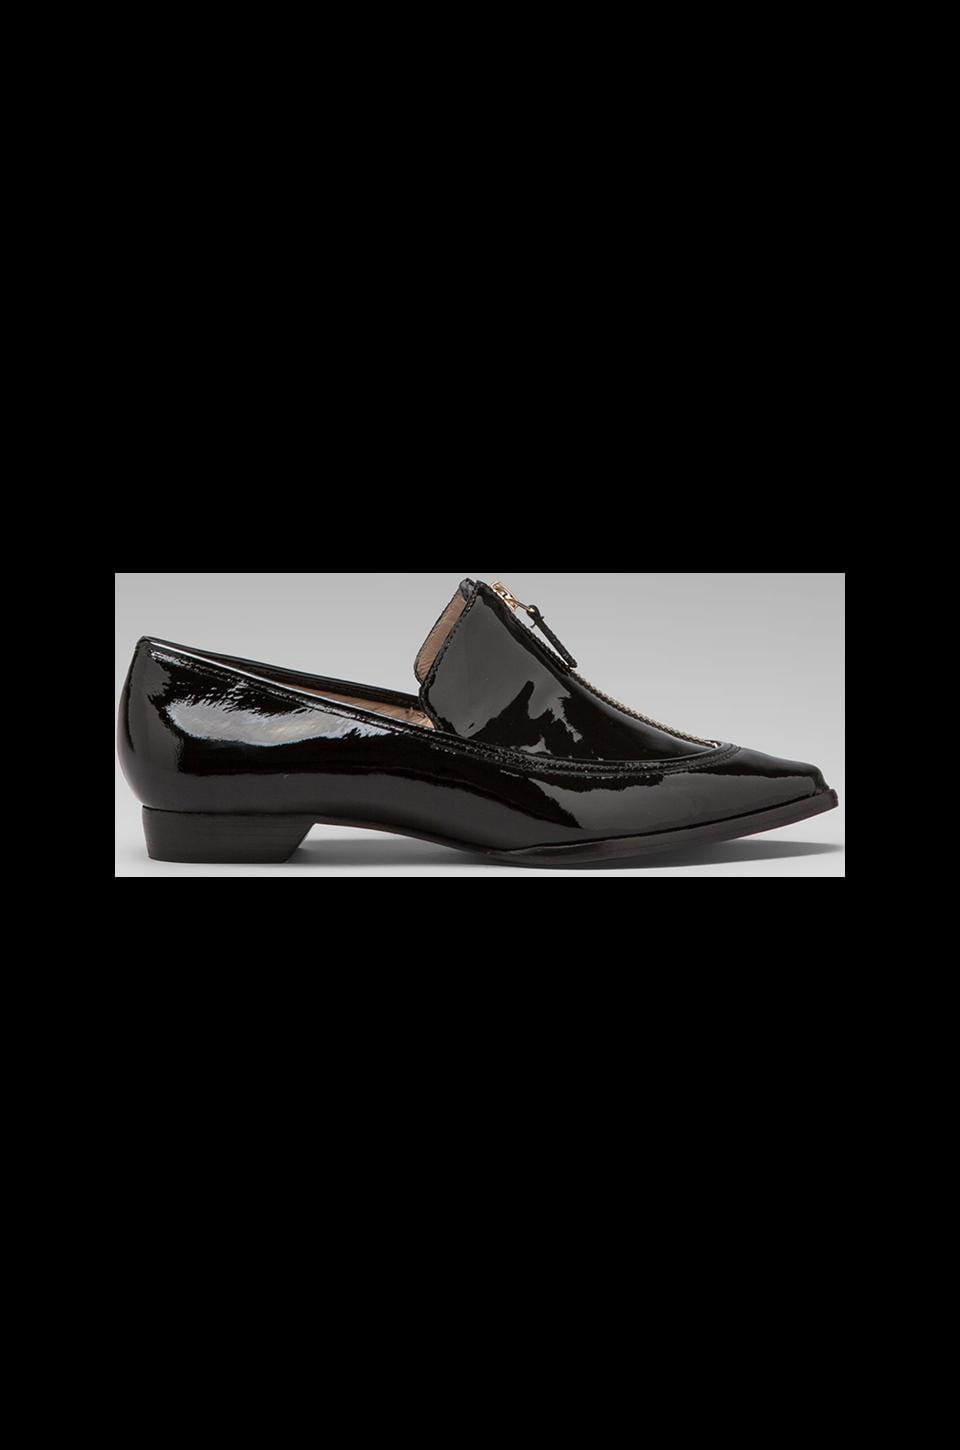 DEREK LAM 10 CROSBY Arty Loafer in Black